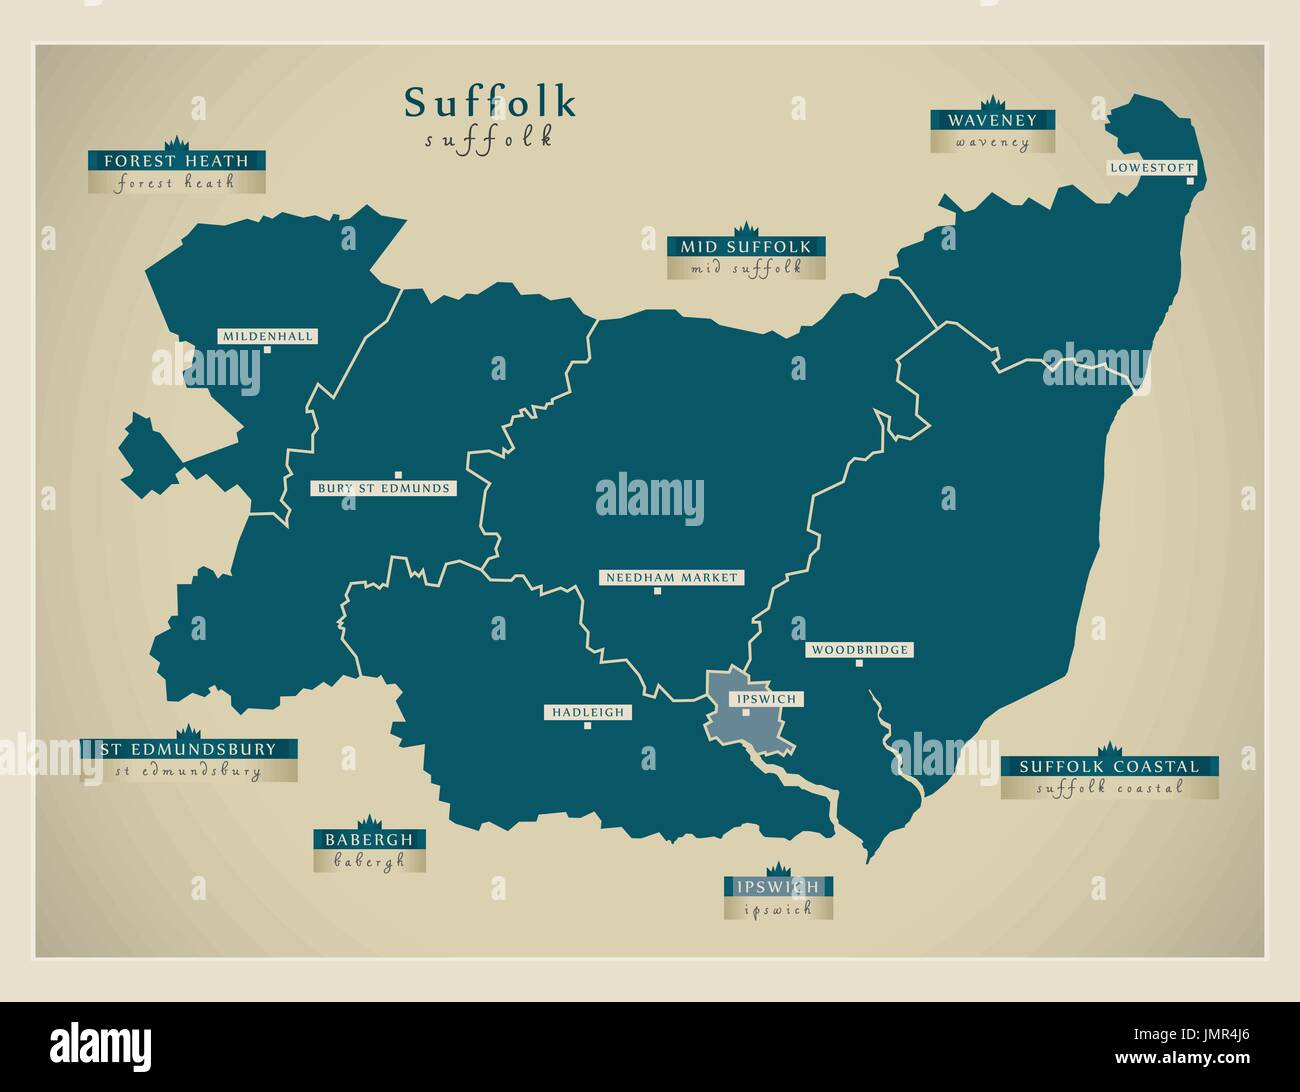 Modern Map - Suffolk county with district labels England UK illustration - Stock Image